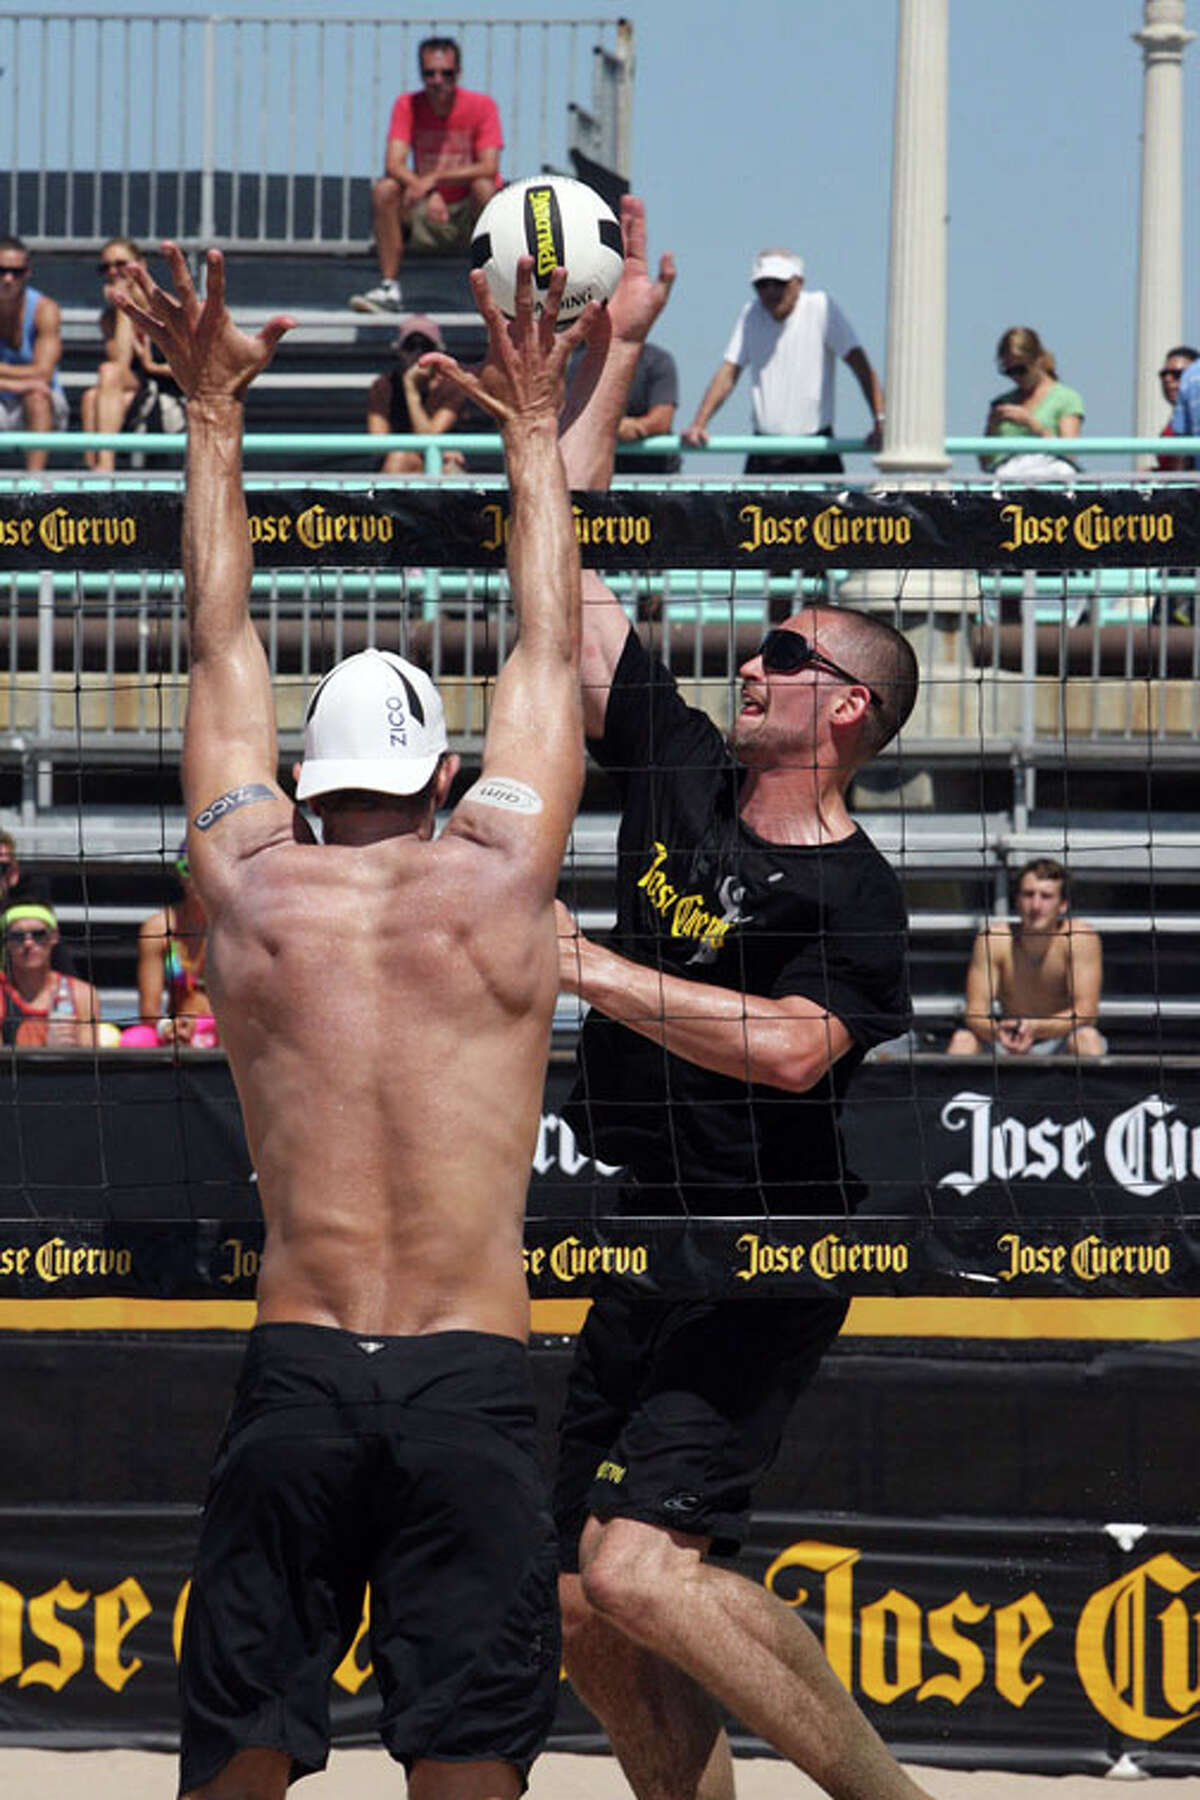 Kevin Love (right) spikes against Sean Scott (left) during the first match of the Jose Cuervo Pro Beach Volleyball Series, on Thursday, August 25, 2011, in Manhattan Beach, California.